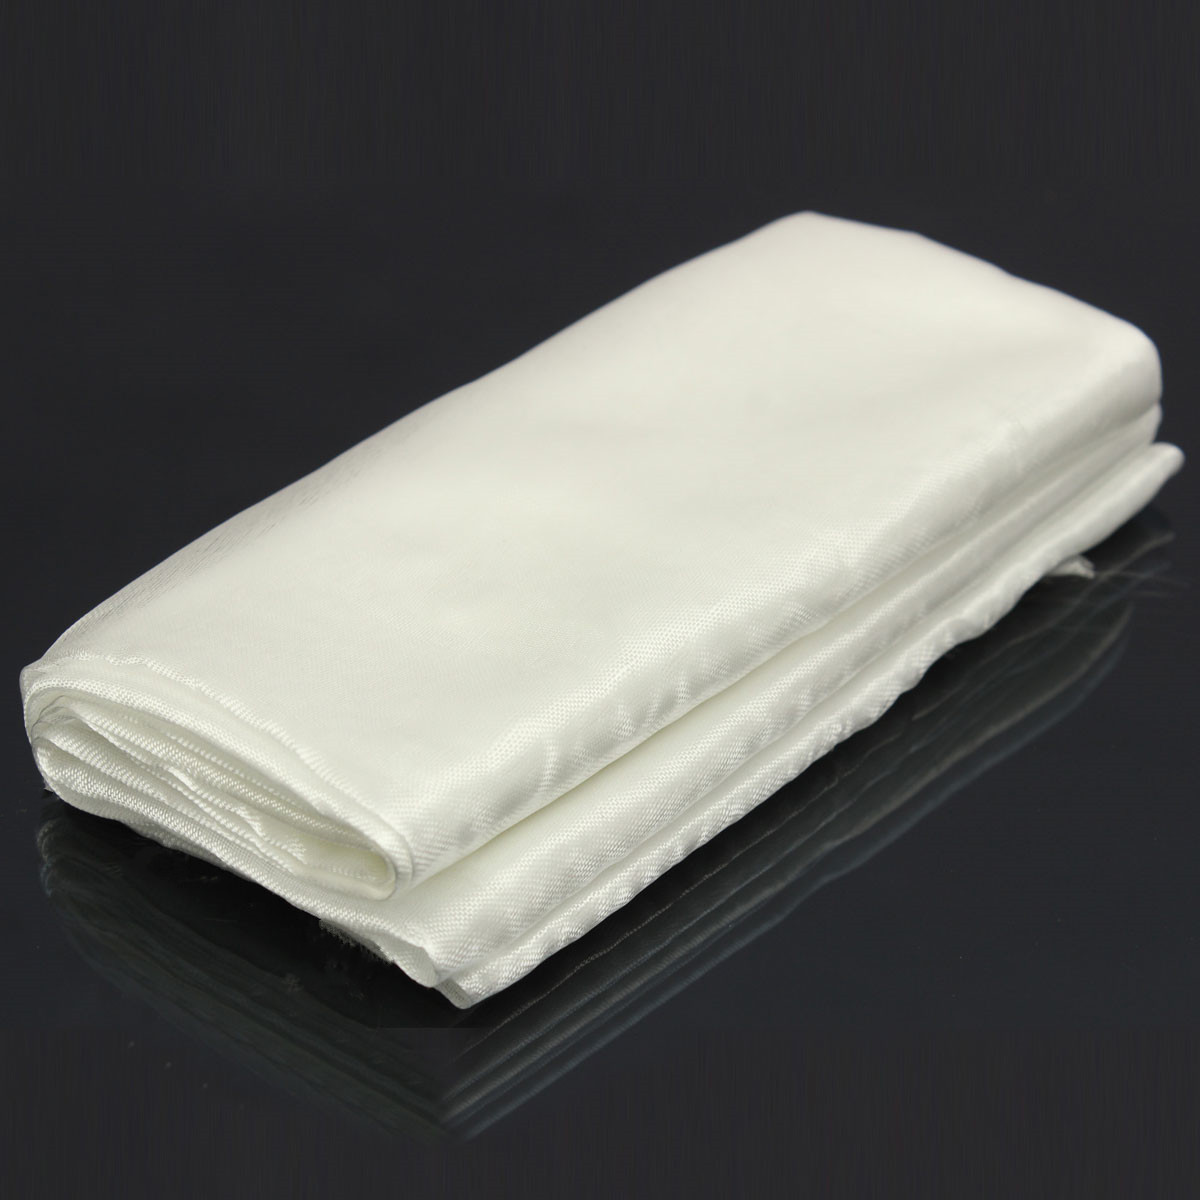 1 x 1.27m Thickness 0.03mm Ultra Thin Fiber Glass Fabric Reinforcements Fiberglass Fibreglass Cloth High temperature resistance